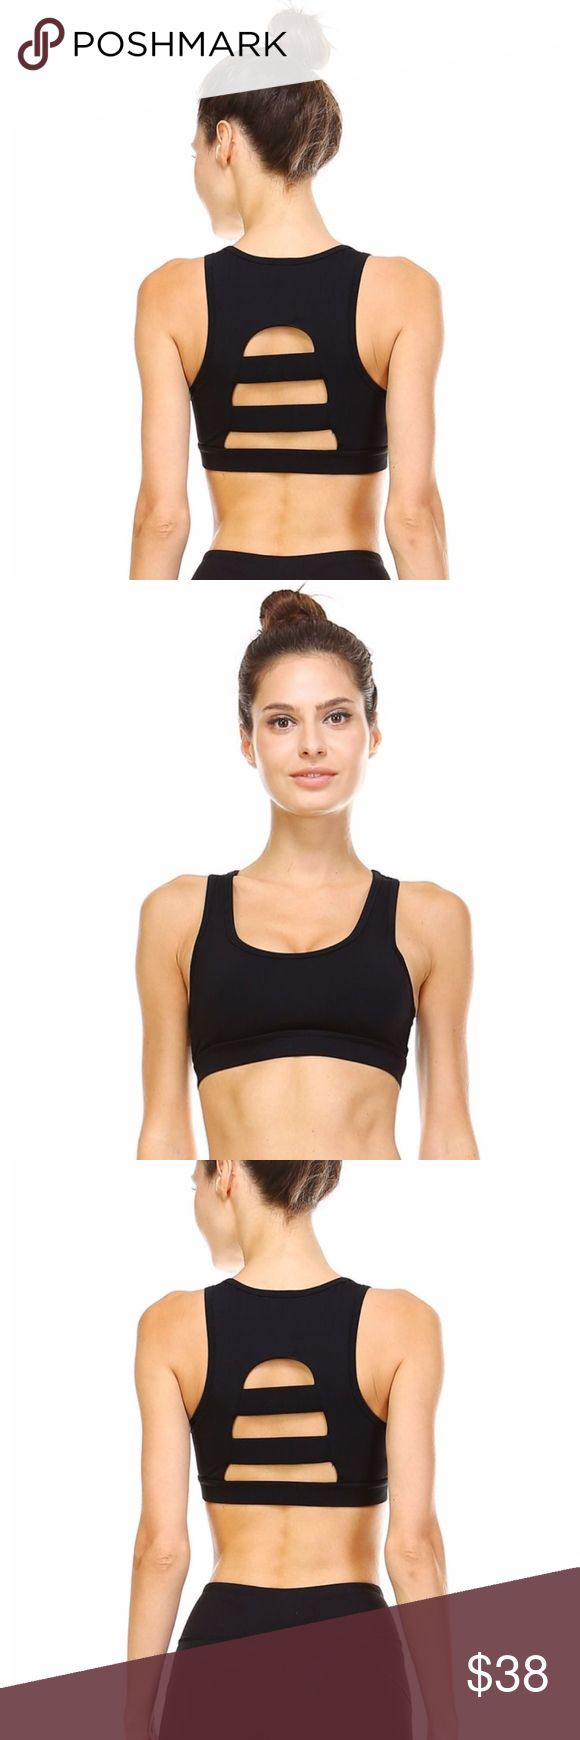 HORIZONTAL STRAP SPORT CROP This sporty crop top is a must-have in your active lifestyle. It features a flattering cut and an open back with three horizontal straps. Pads are removable. Moisture wicking. Four-way stretch.  Fabric: 81% nylon, 19% spandex. Tops Crop Tops